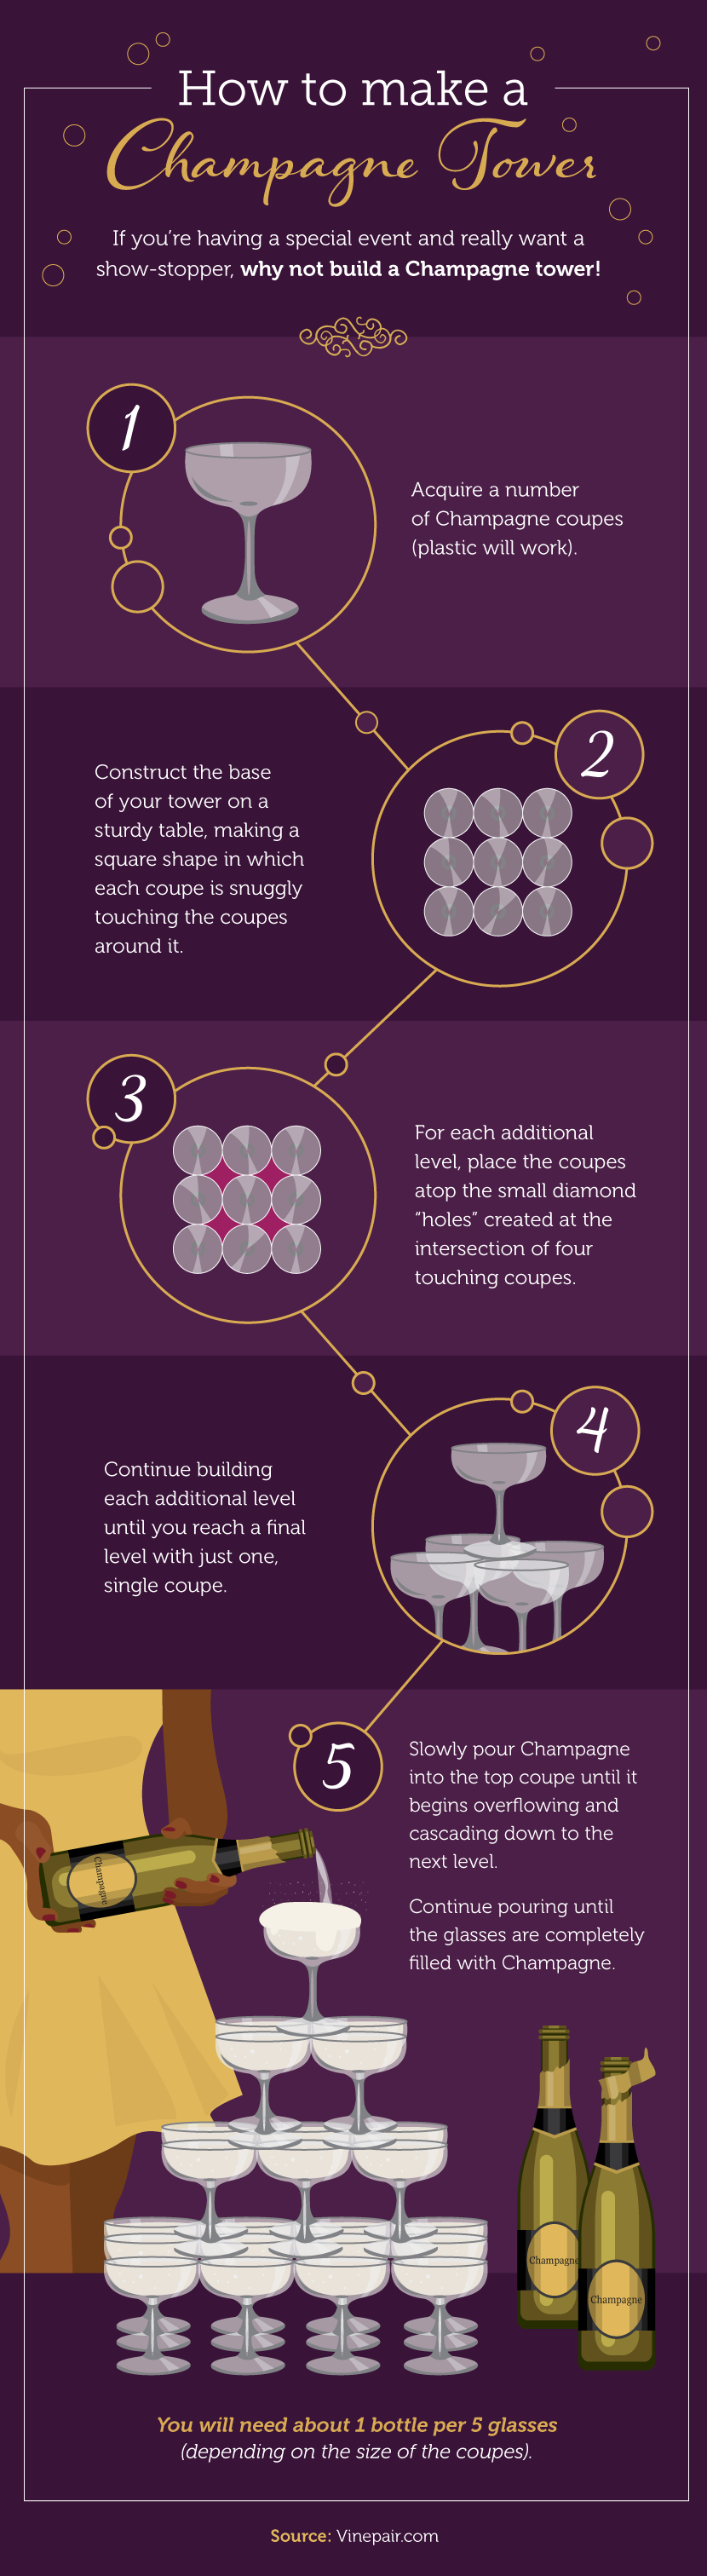 How to Make a Champagne Tower - Everything You Need To Know About Drinking Champagne